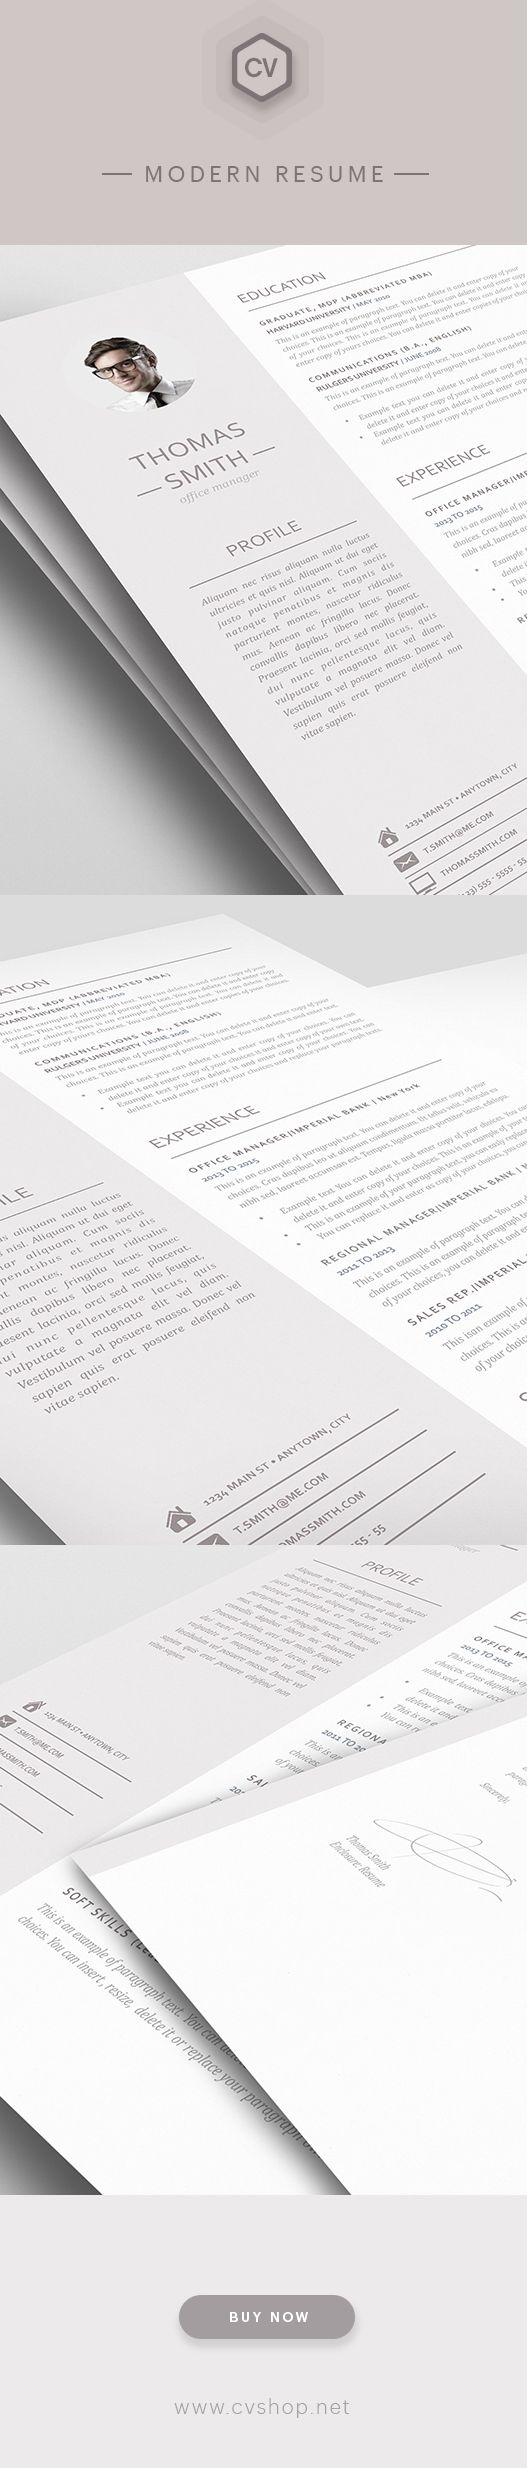 best images about ms word resume templates cover resume template 110960 9116modern resume templates cvshop net cvshop